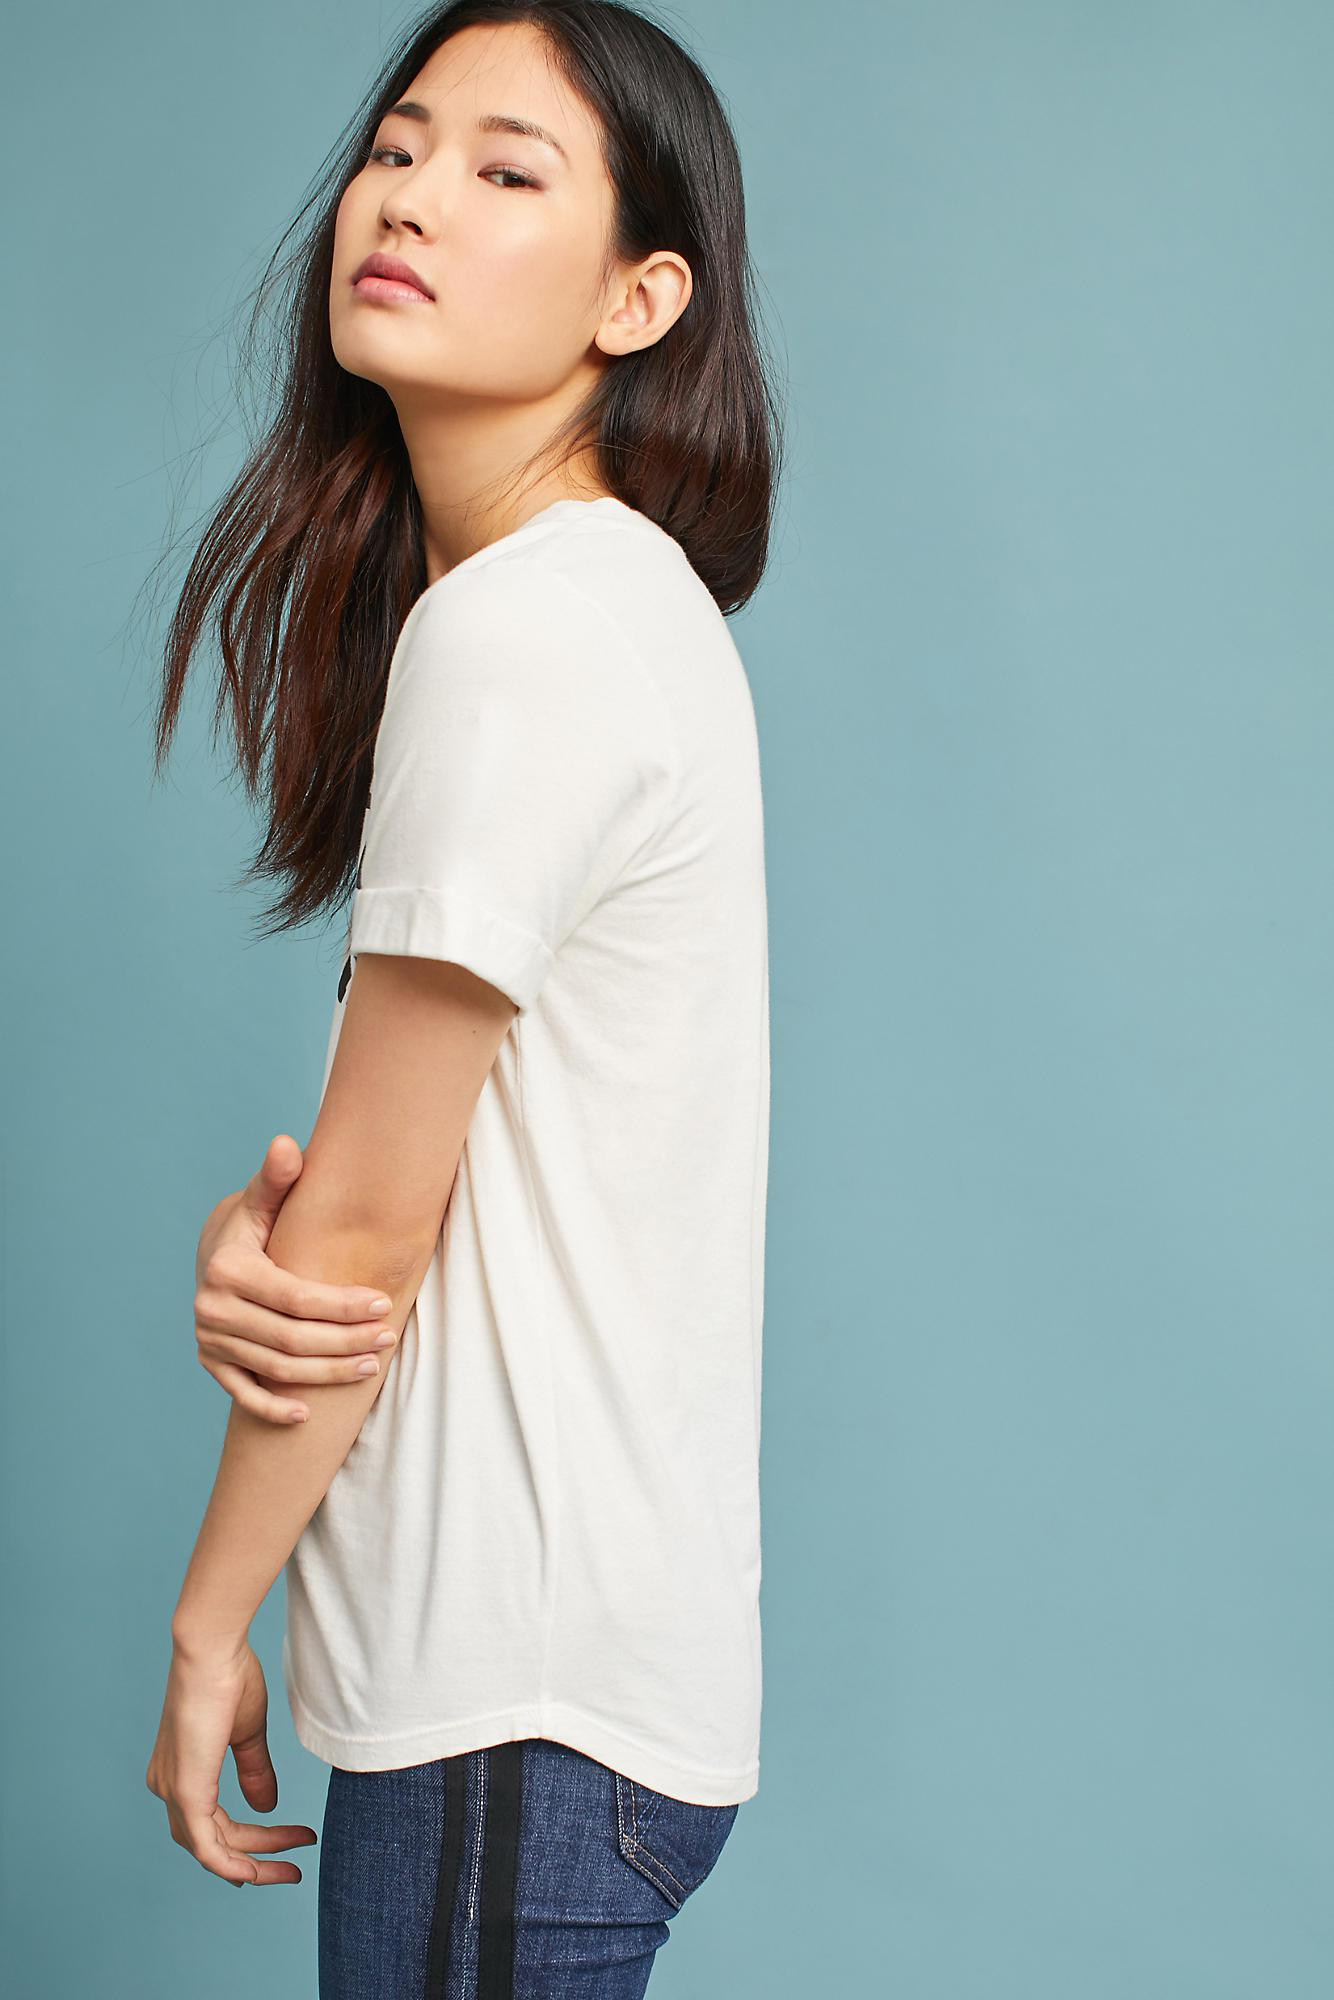 620fdb87 Sol Angeles Cuffed Graphic Tee in White - Lyst